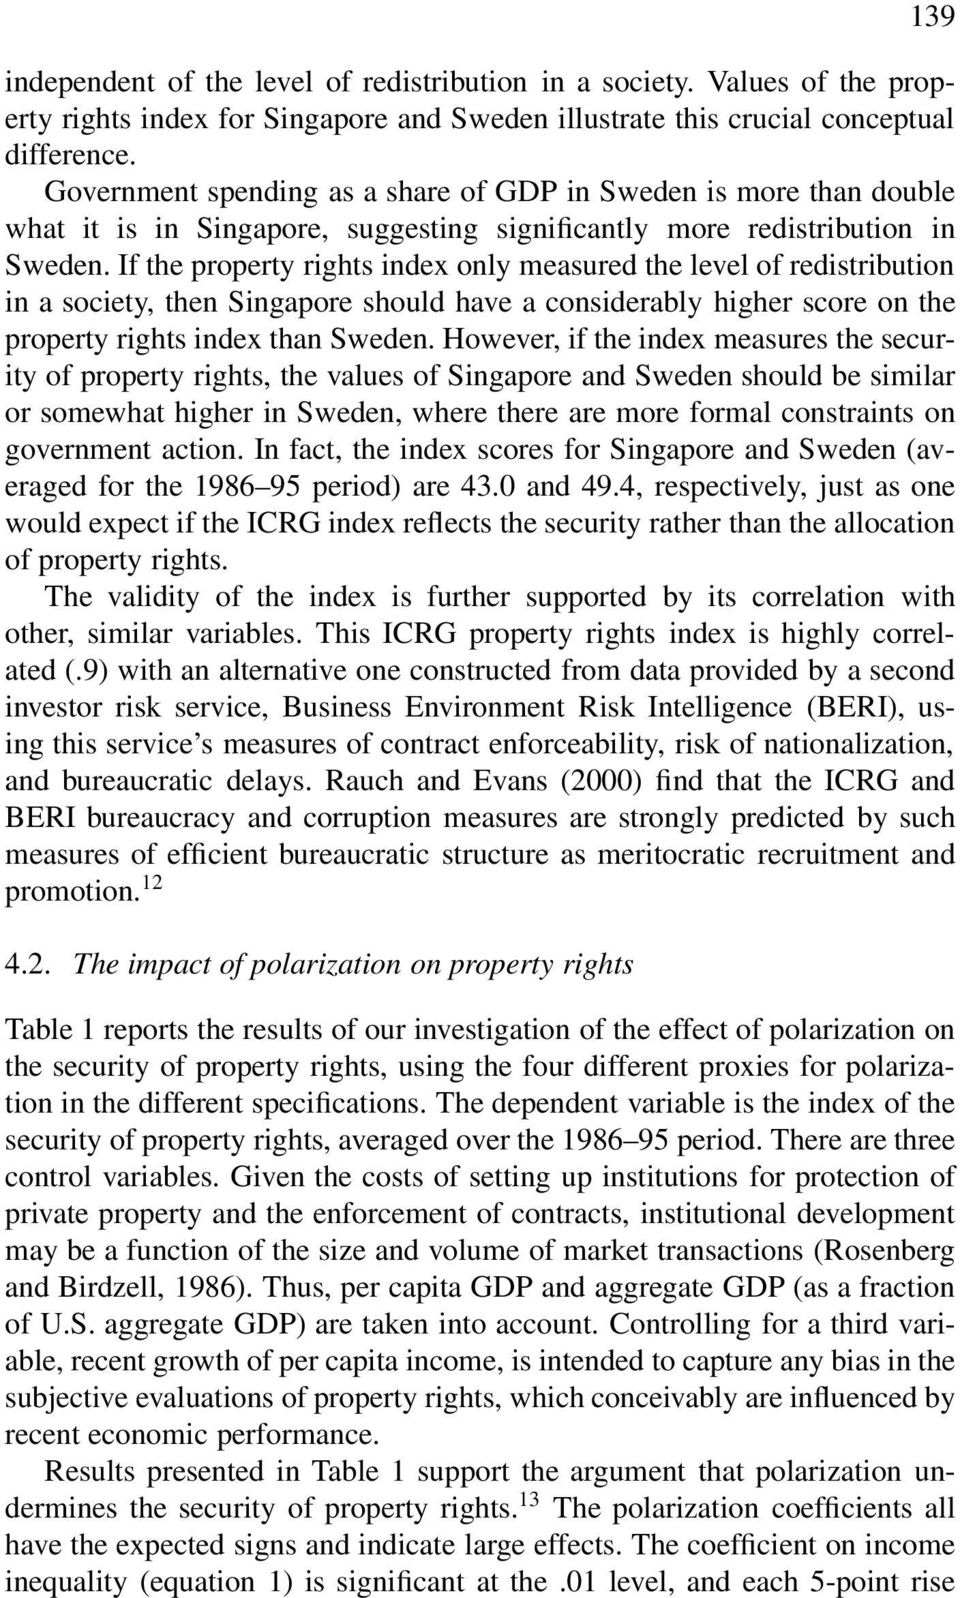 If the property rights index only measured the level of redistribution in a society, then Singapore should have a considerably higher score on the property rights index than Sweden.